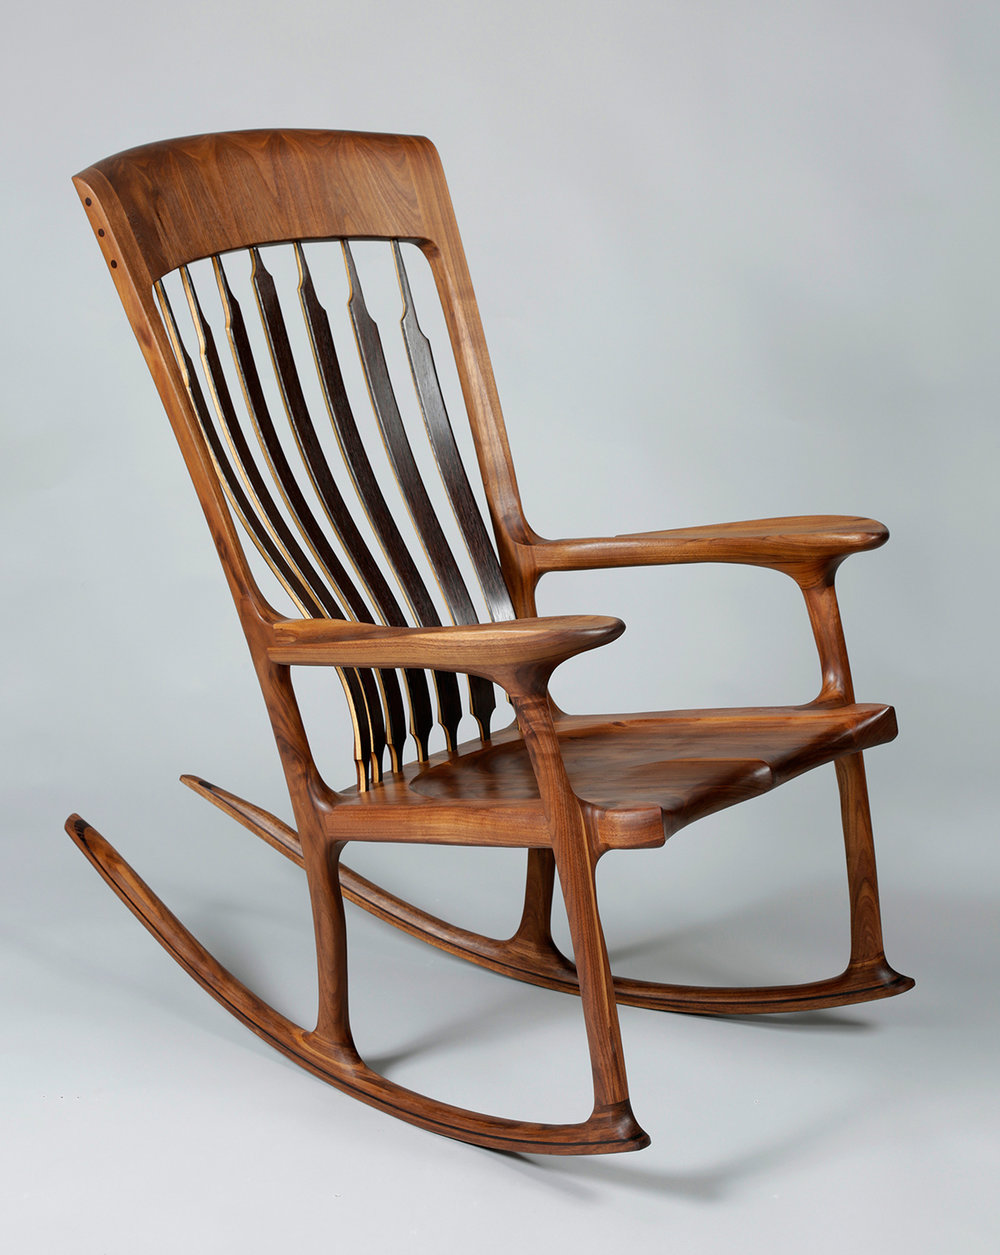 Peachy Sculpted Rocker Caraccident5 Cool Chair Designs And Ideas Caraccident5Info